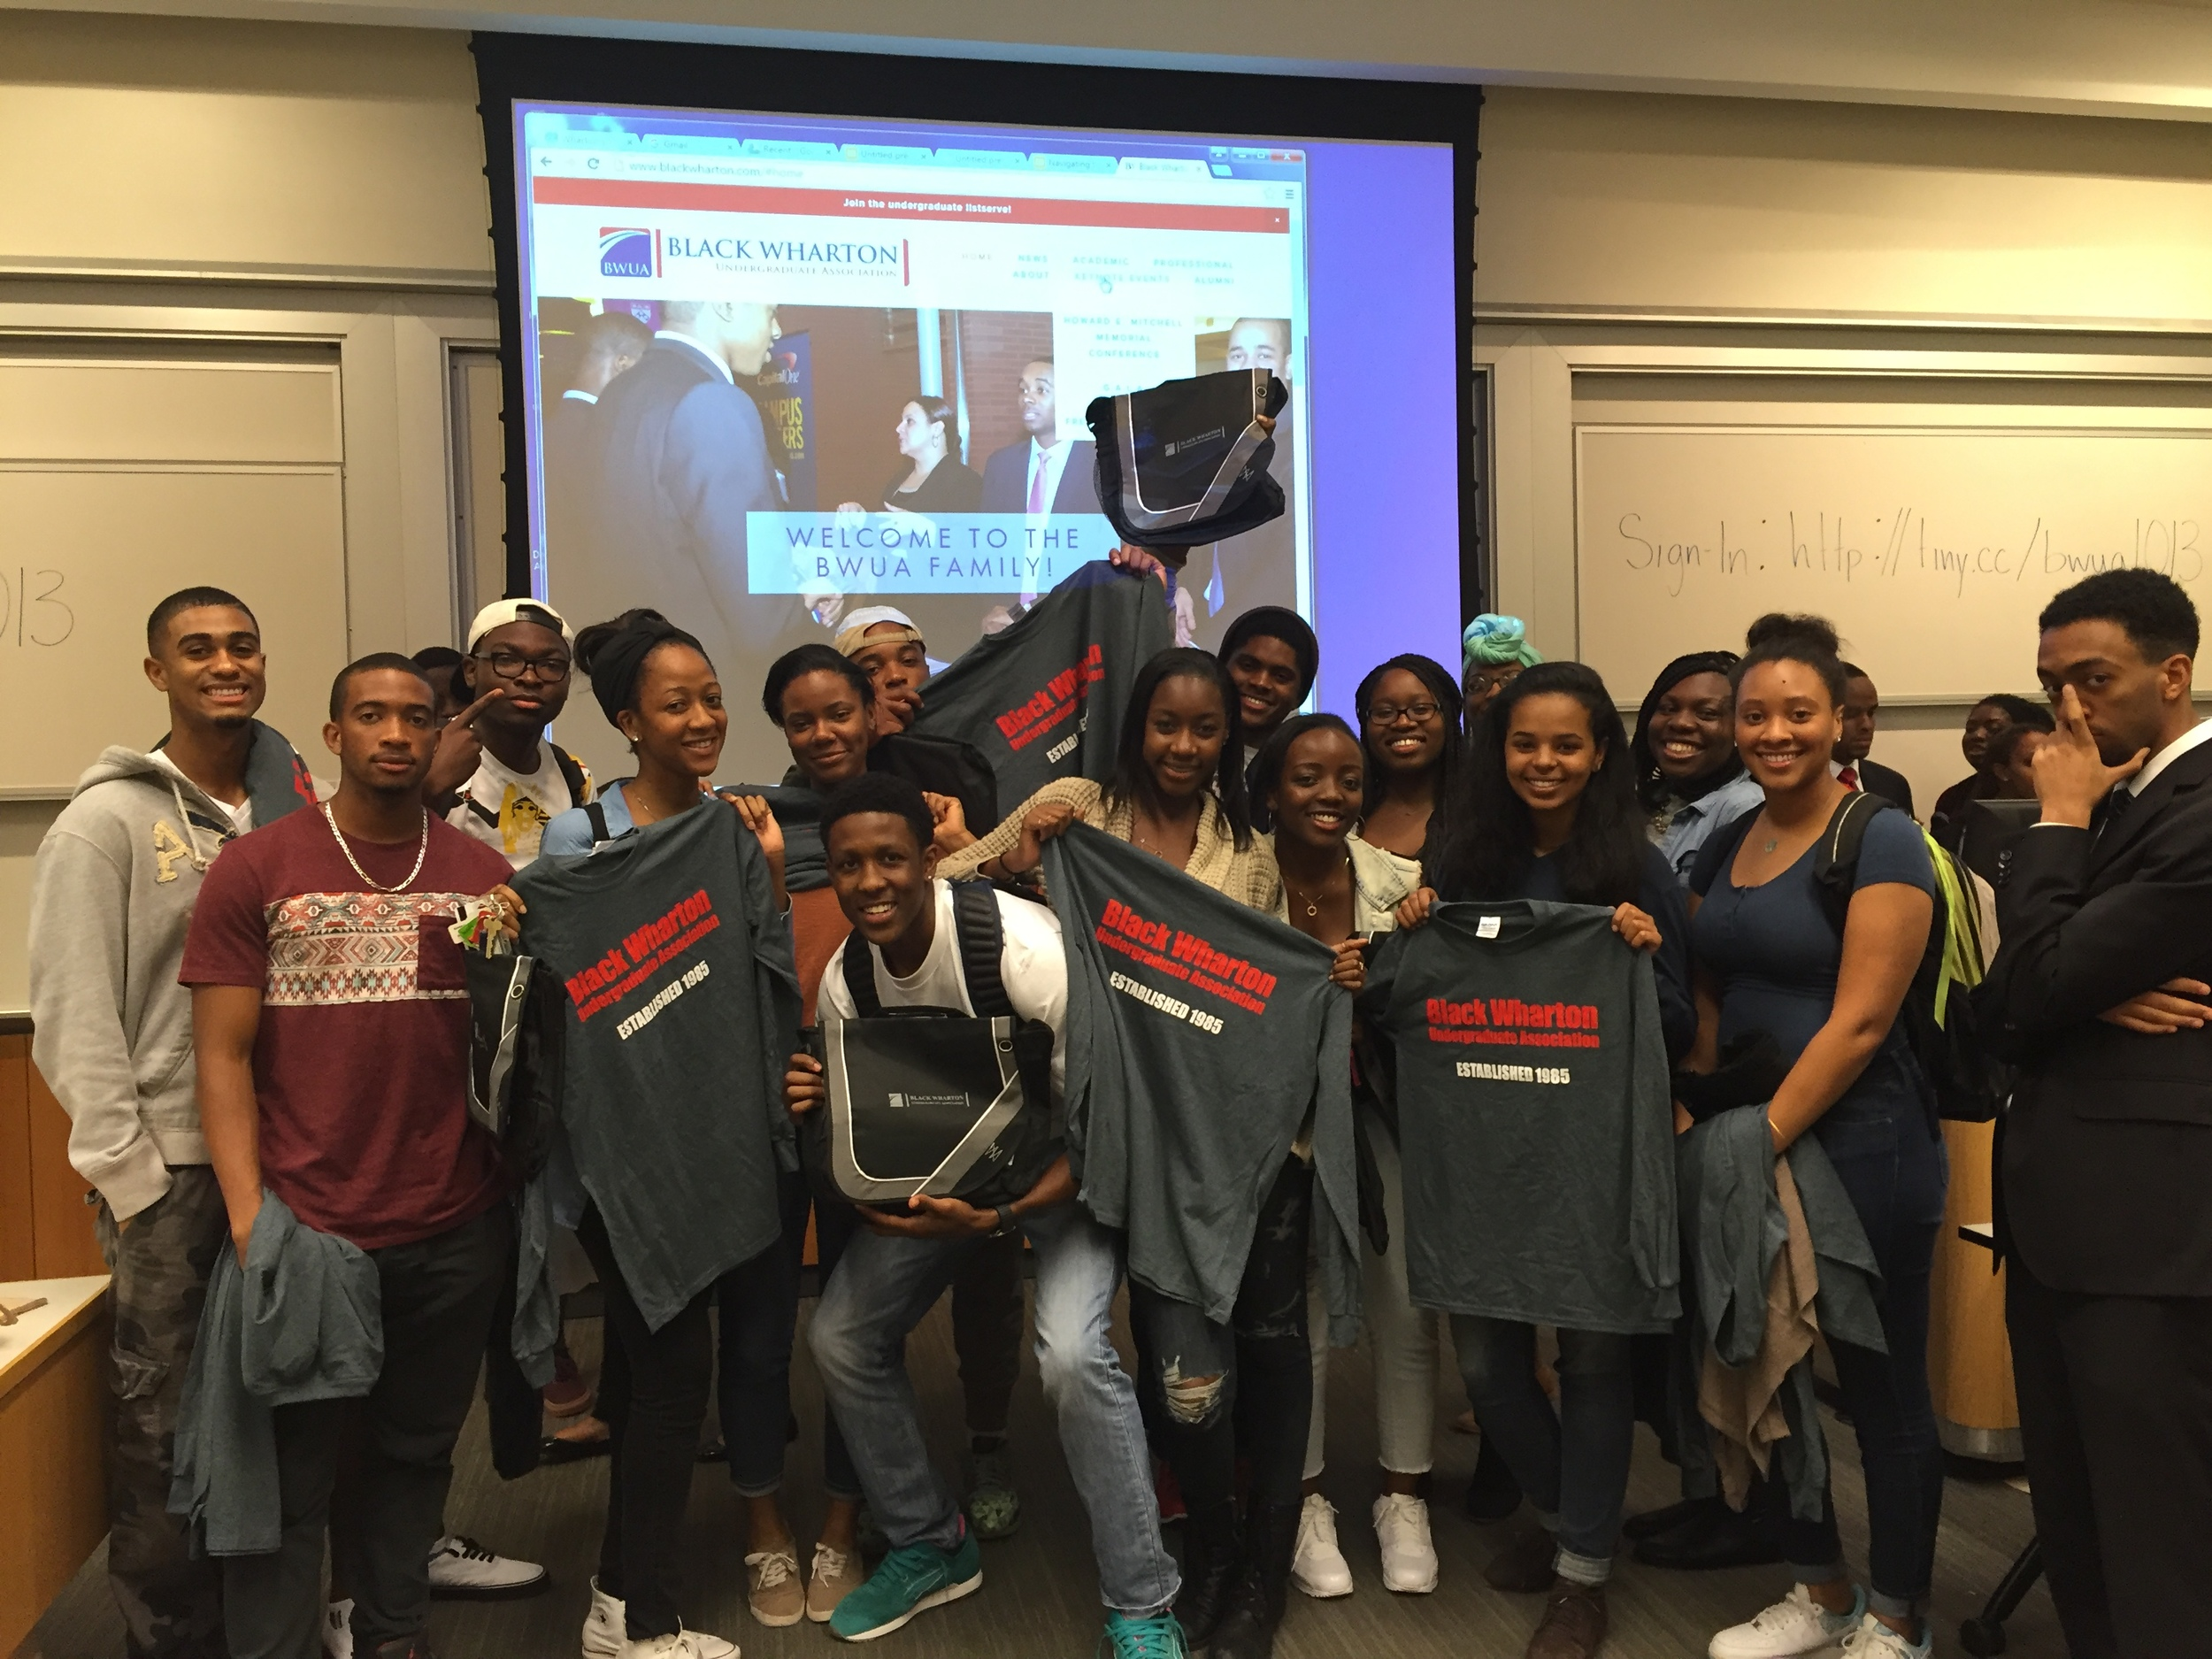 The sophomores pulled off a fantastic win and got to go home with BWUA long-sleeved shirts and laptop bags! Thank you to all attendees and participants for your amazing performance at this month's GBM! Make sure you share all of the insights you gained from BWUA's lesson in Navigating the Penn-pire!